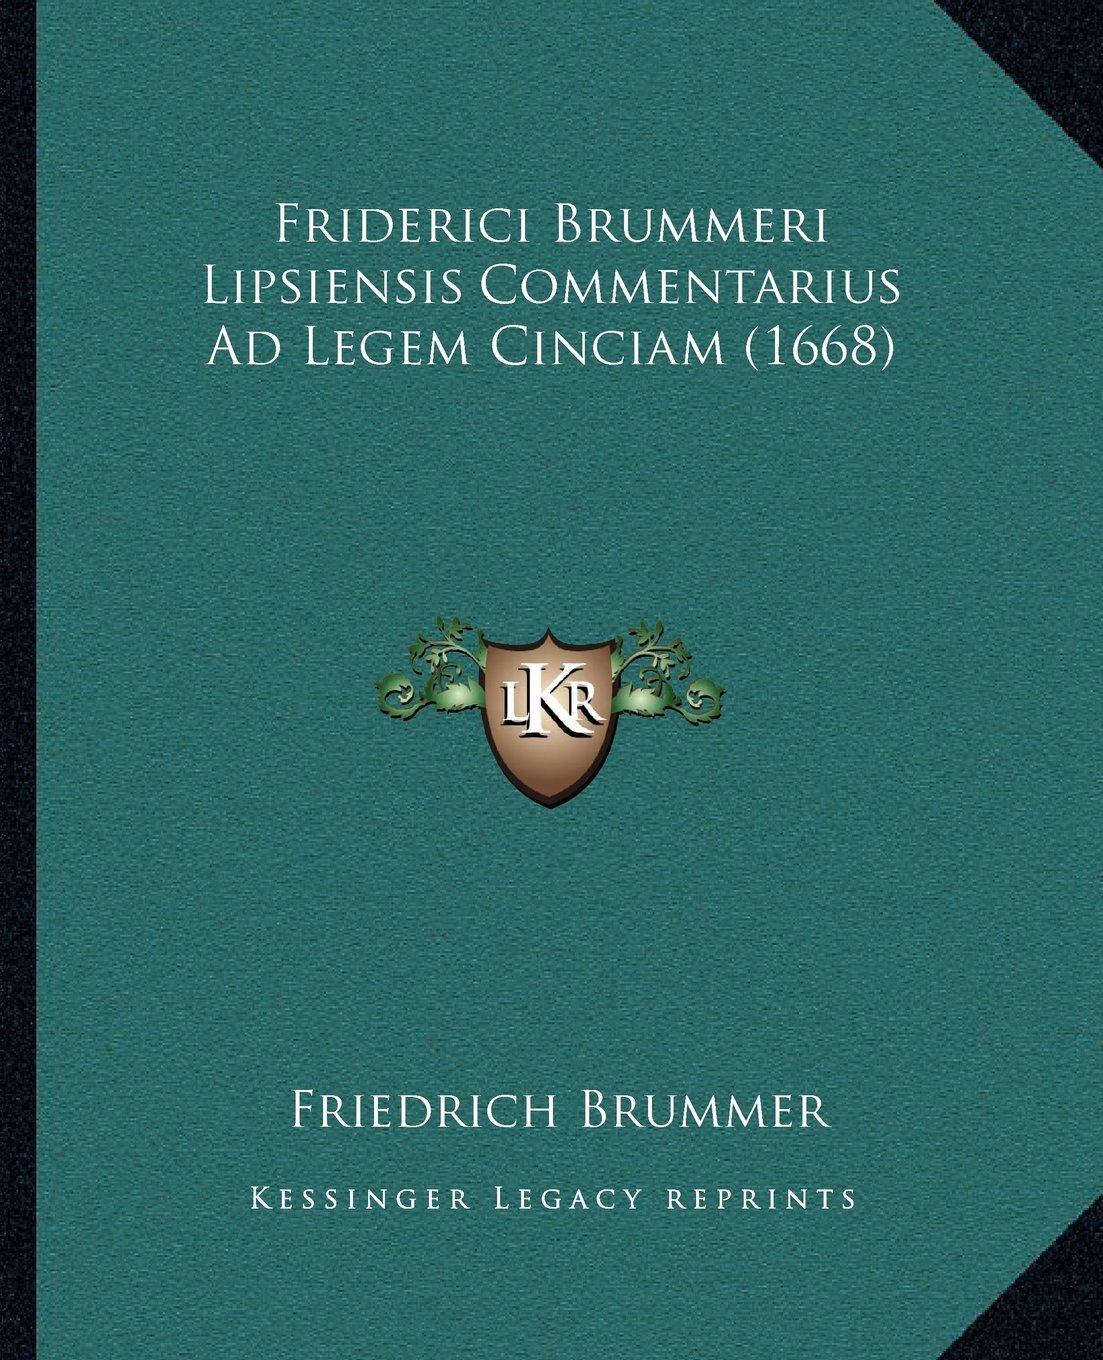 Friderici Brummeri Lipsiensis Commentarius Ad Legem Cinciam (1668) (Latin Edition) Text fb2 ebook